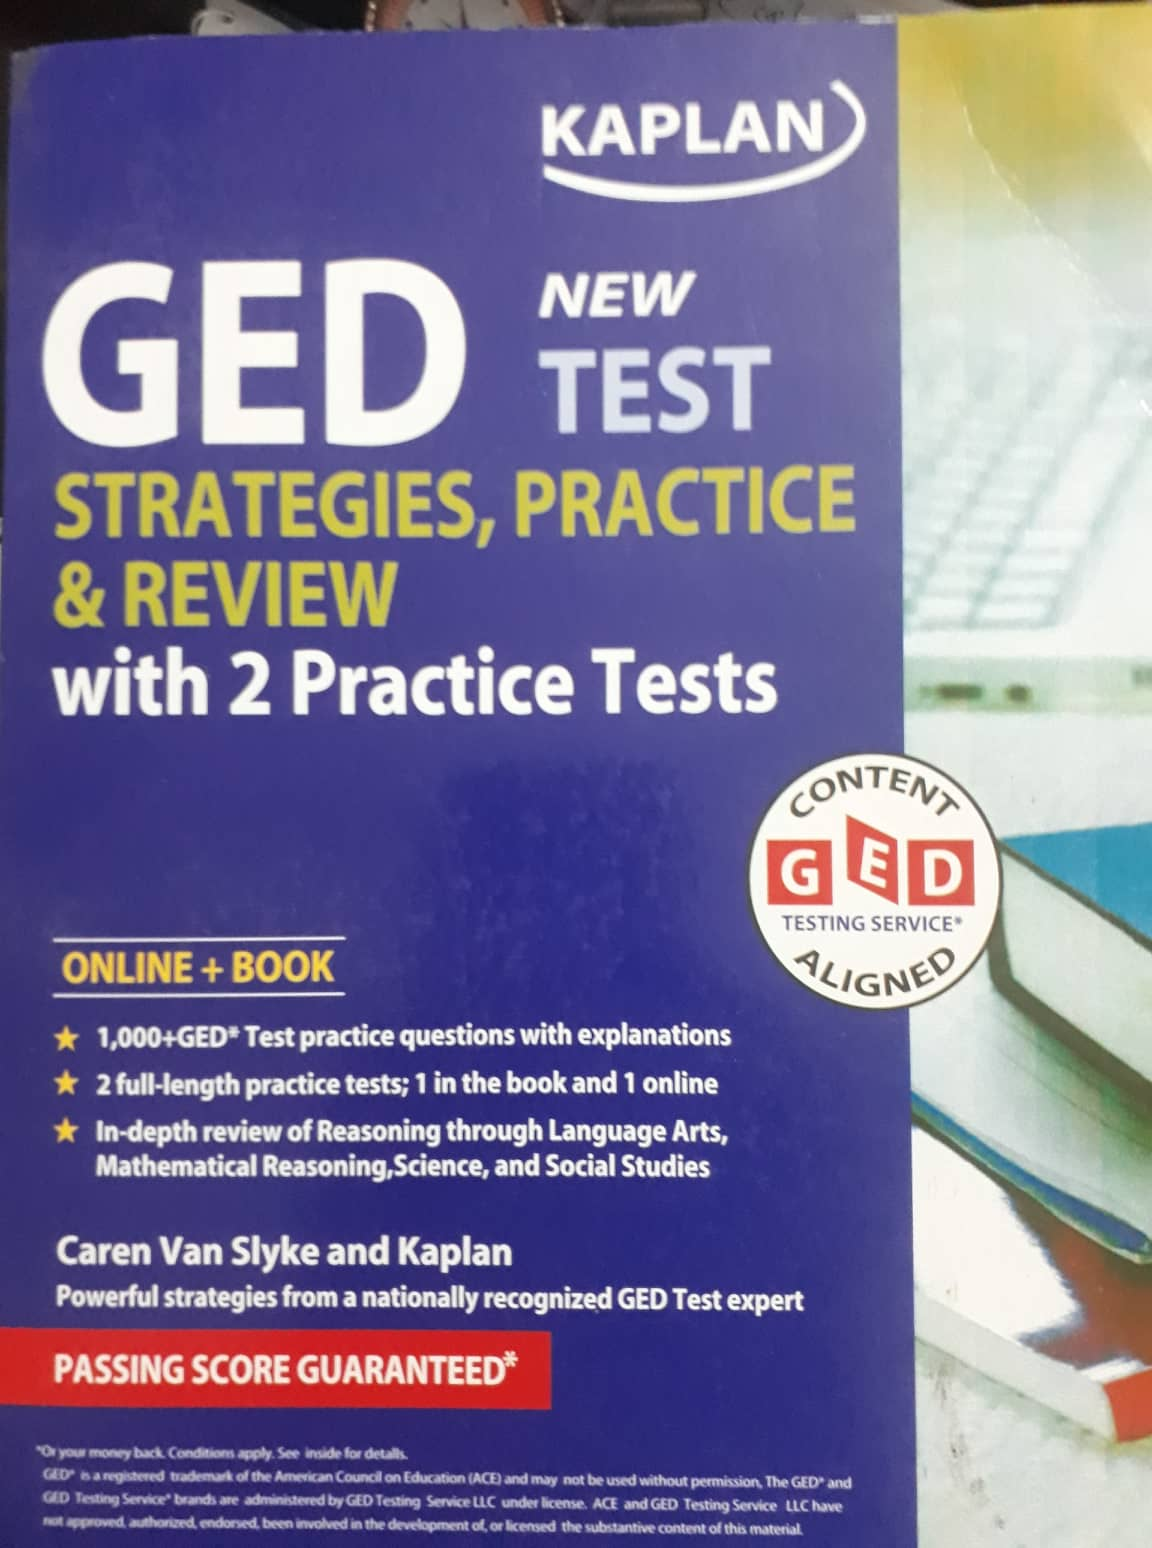 GED Test 2019-2020 Strategies, Practice Review with 2 Practice Tests -  BookShopBD com